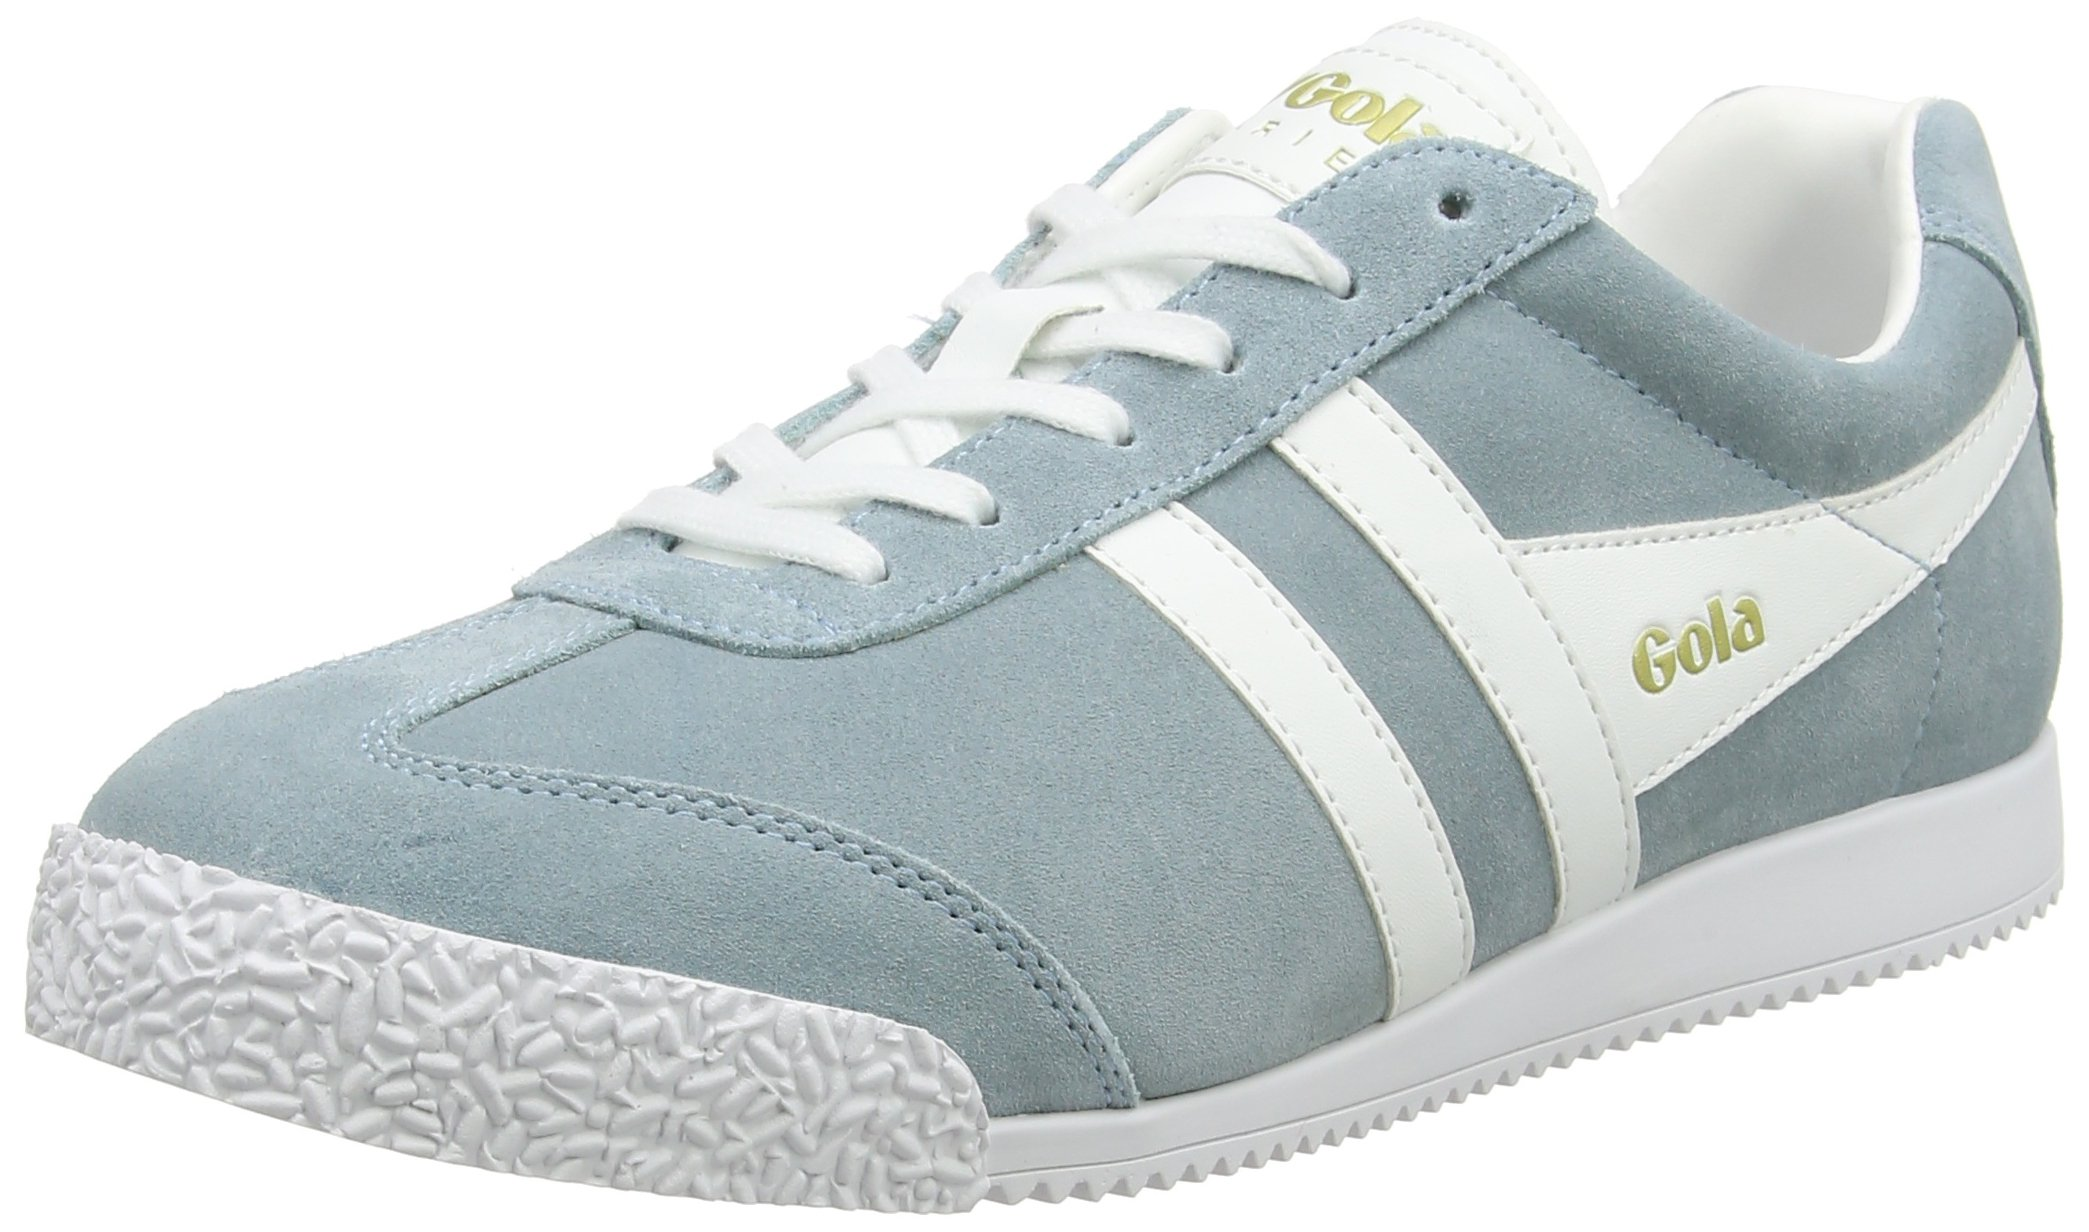 Gola Womens Harrier Sneaker,Sky Blue/White Suede,US 8 M